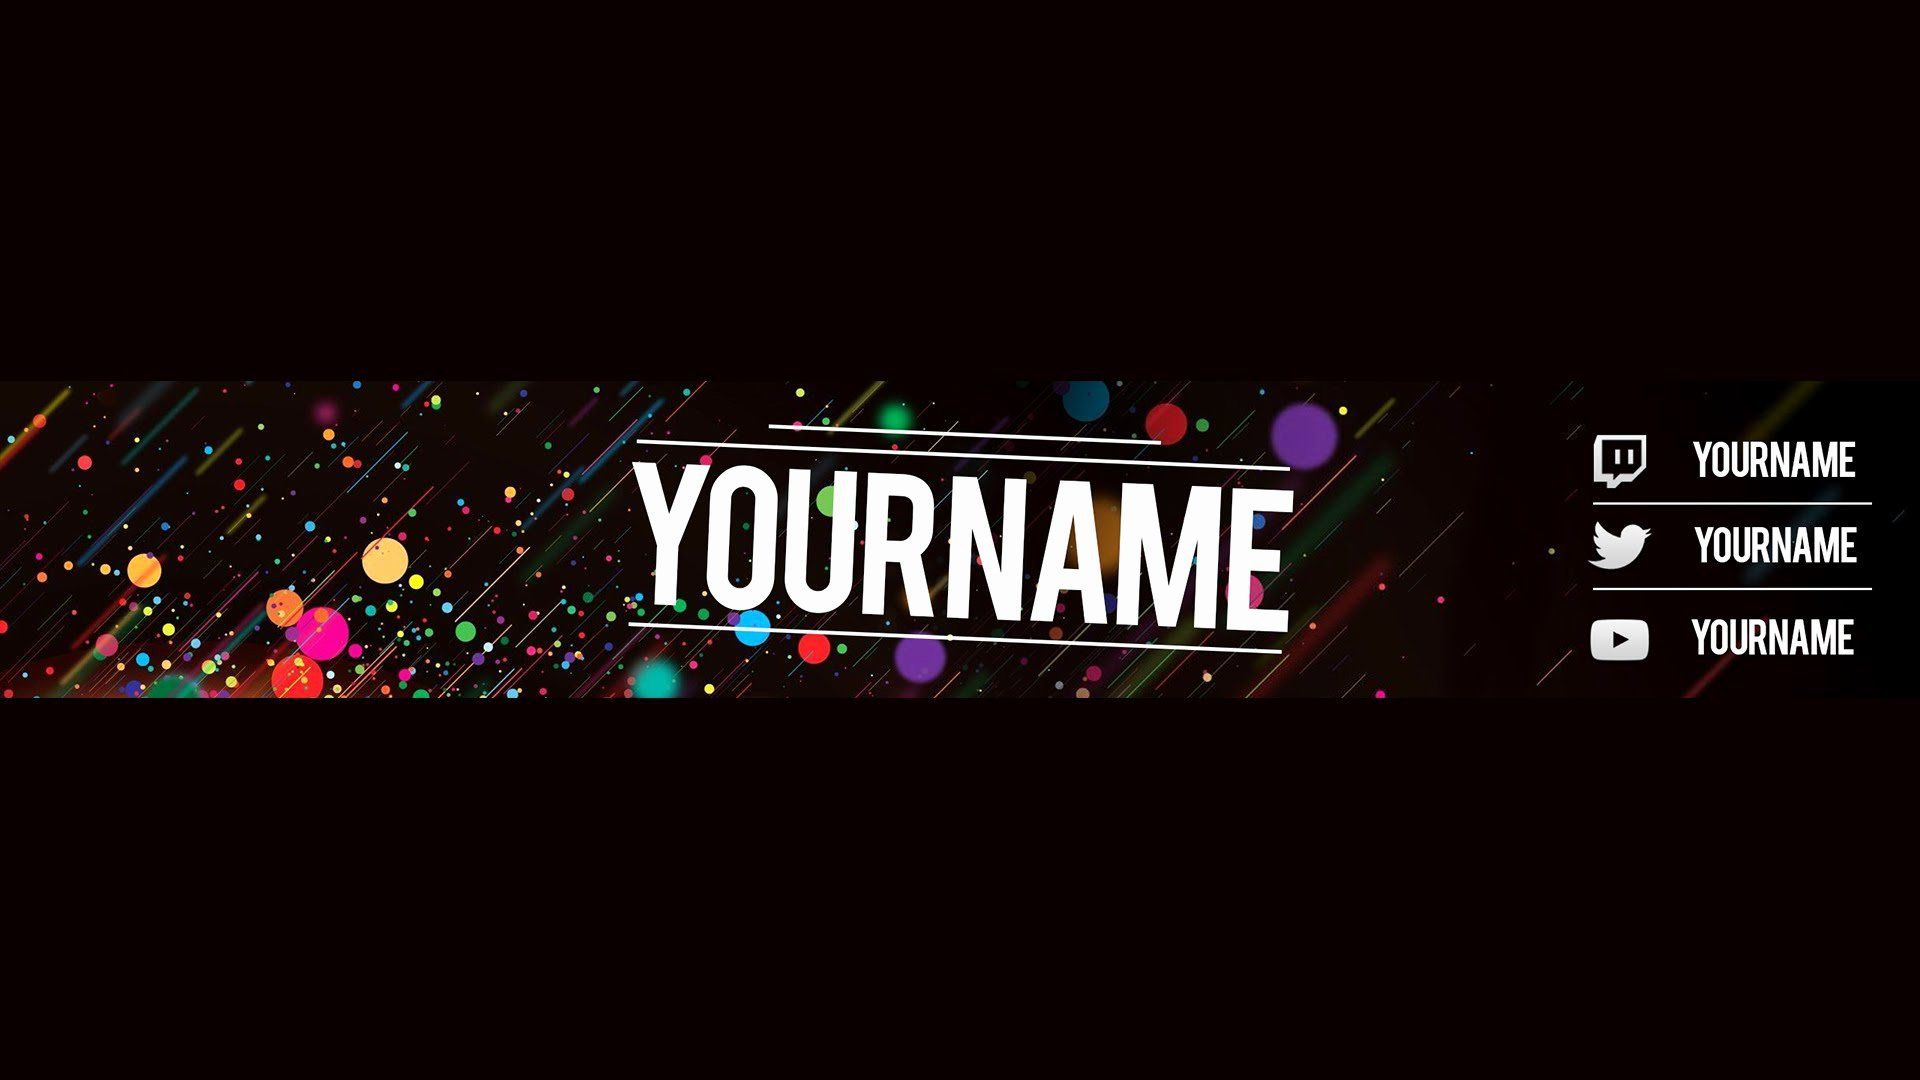 Youtube Banner Template No Text Unique 20 Of Gta 5 Banner Template No Text Youtube Banner Template Youtube Banners Banner Template